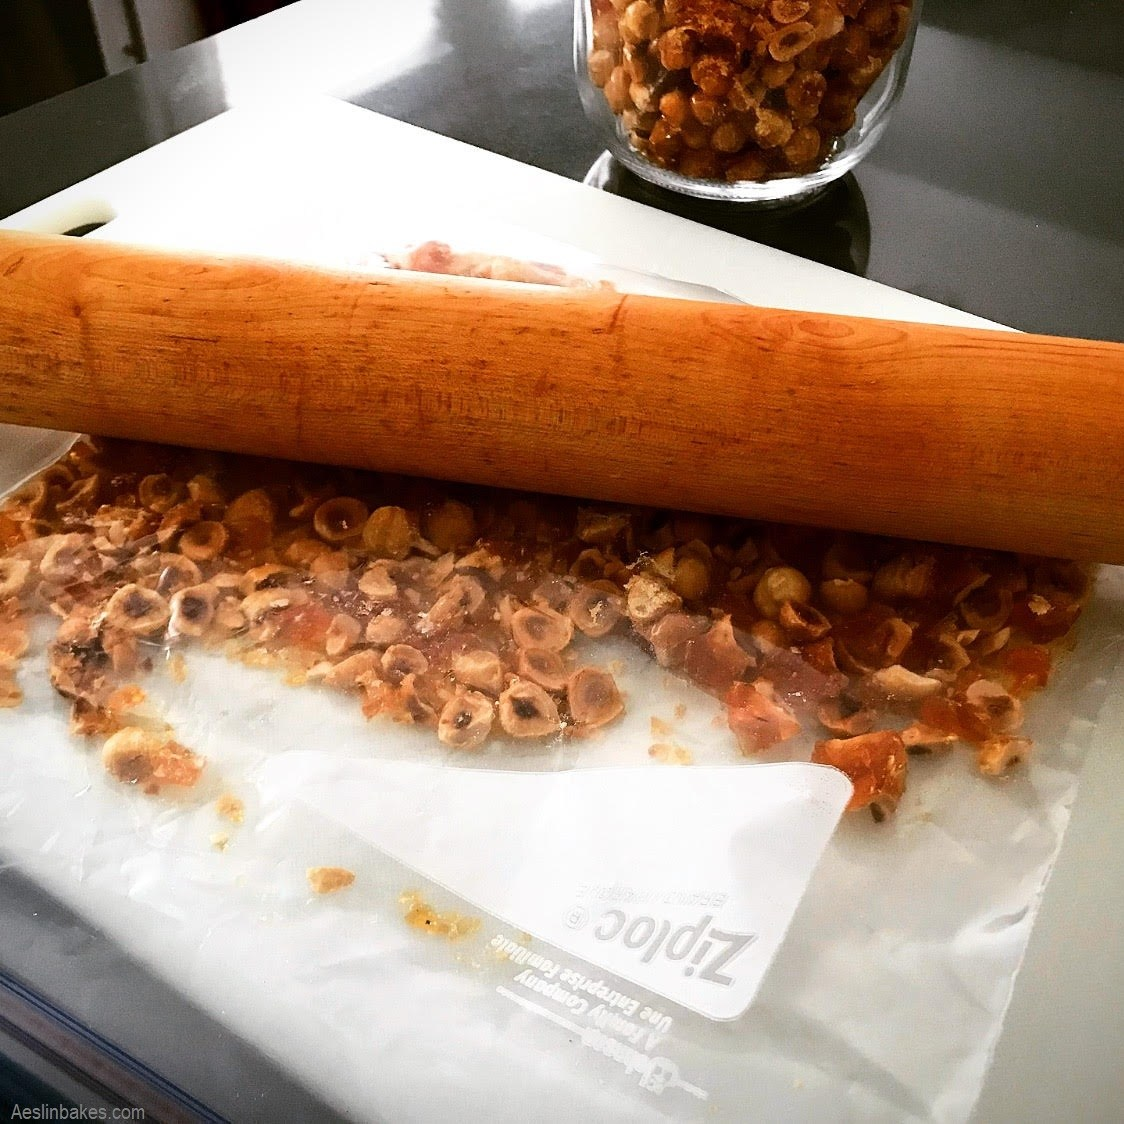 smashing brittle with a rolling pin